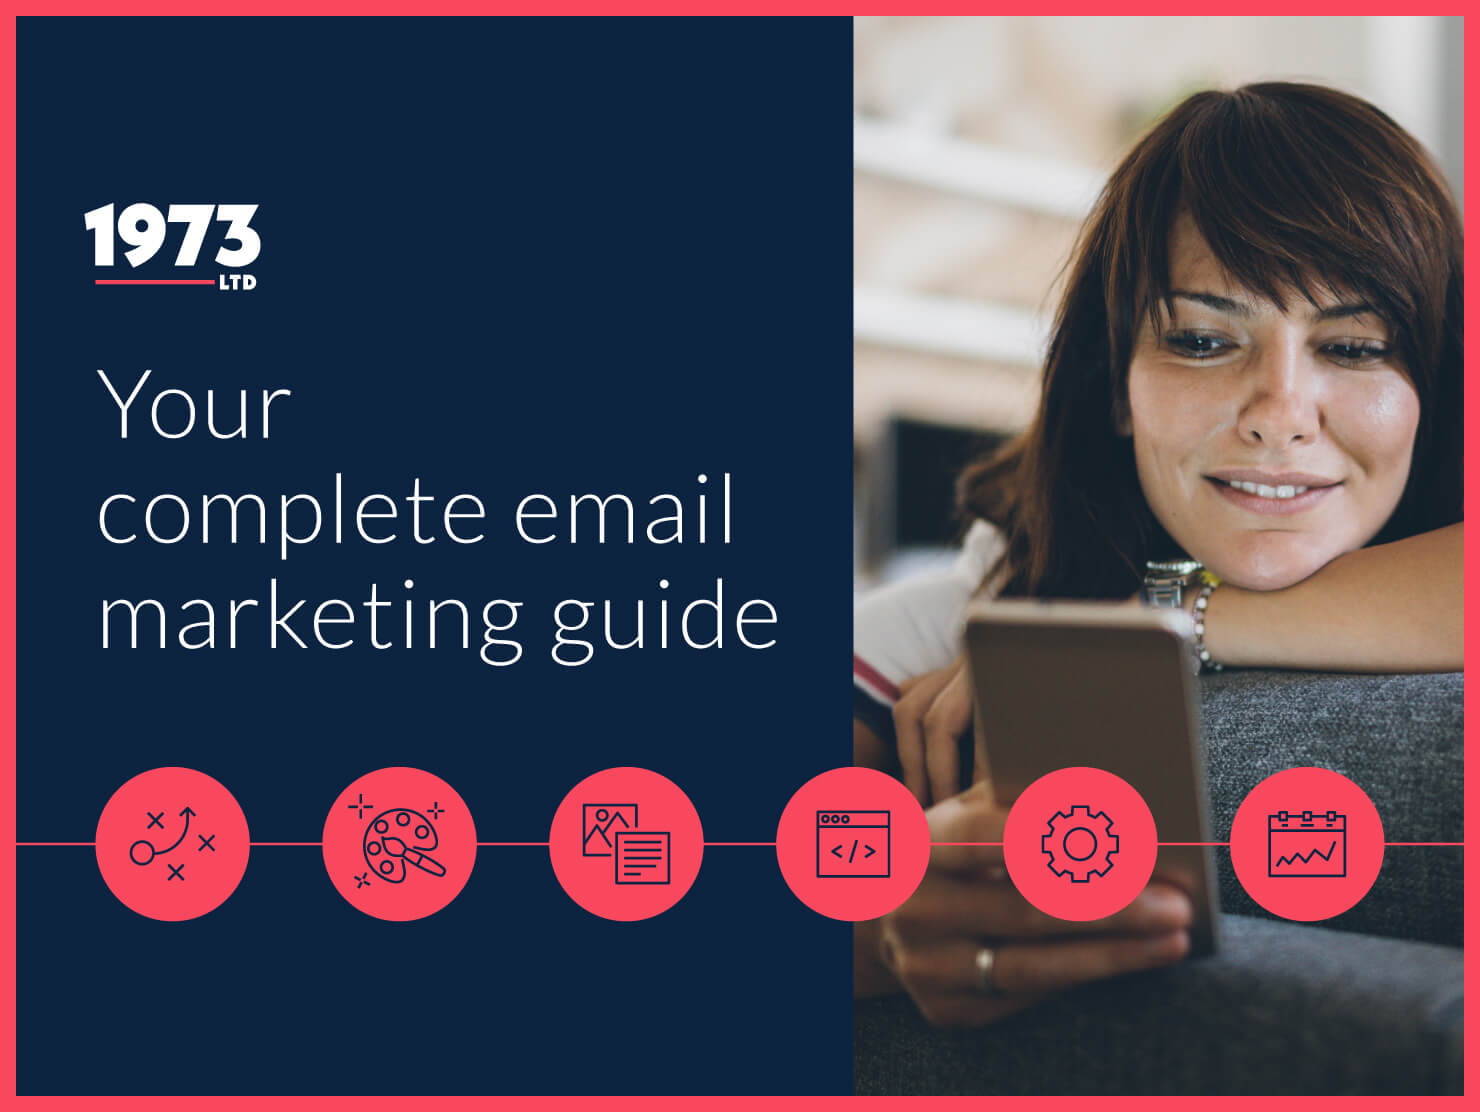 Your complete email marketing guide